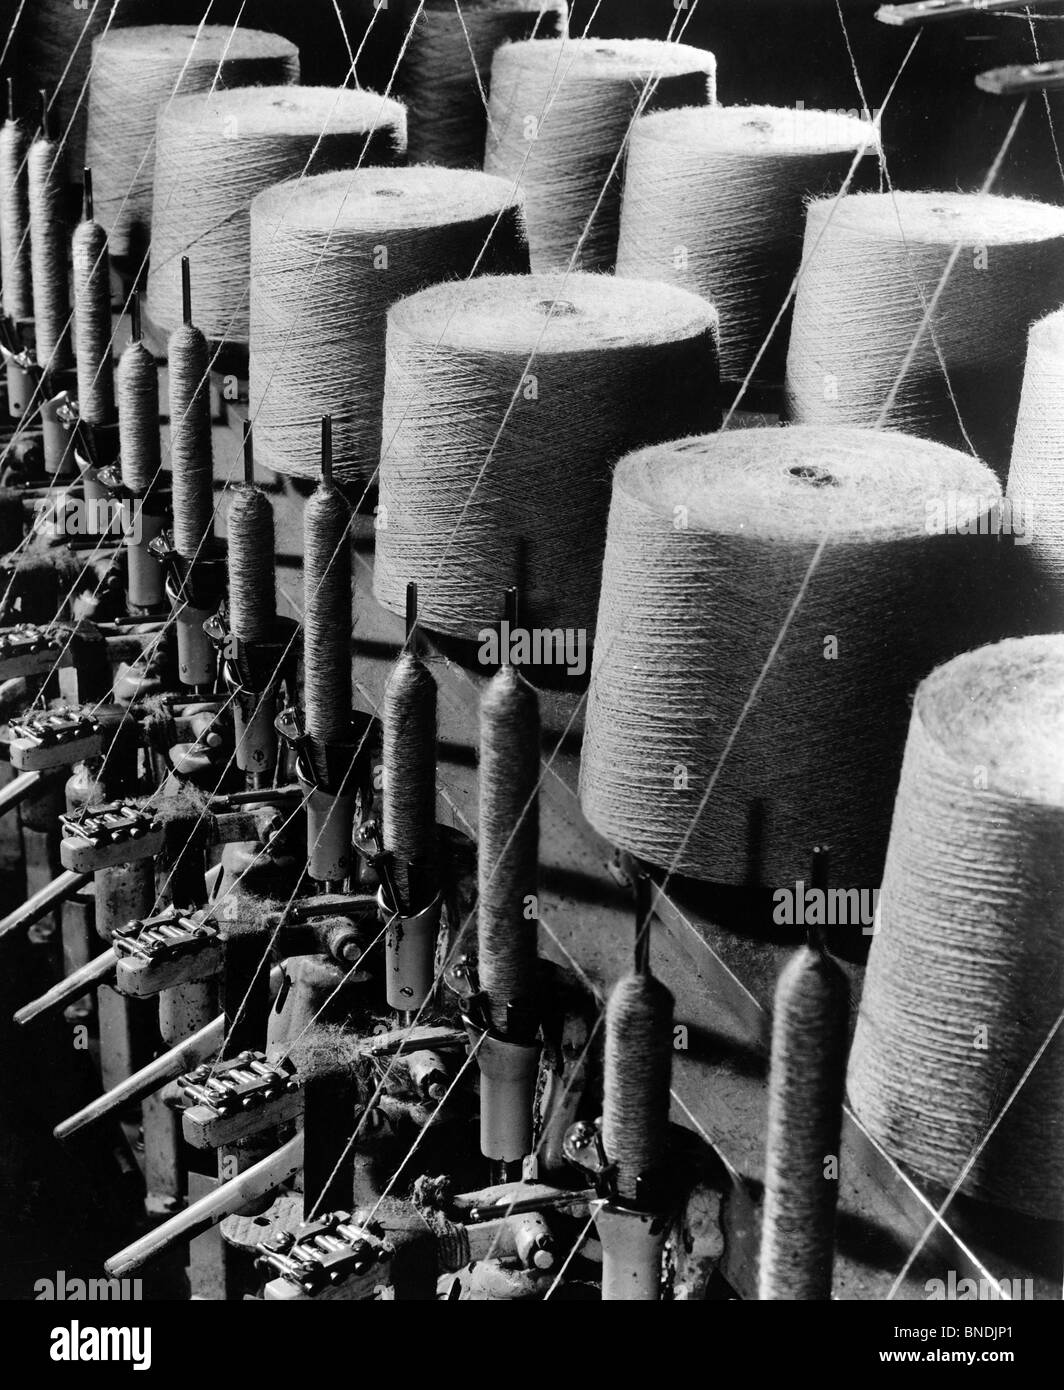 Spools of thread in textile factory - Stock Image